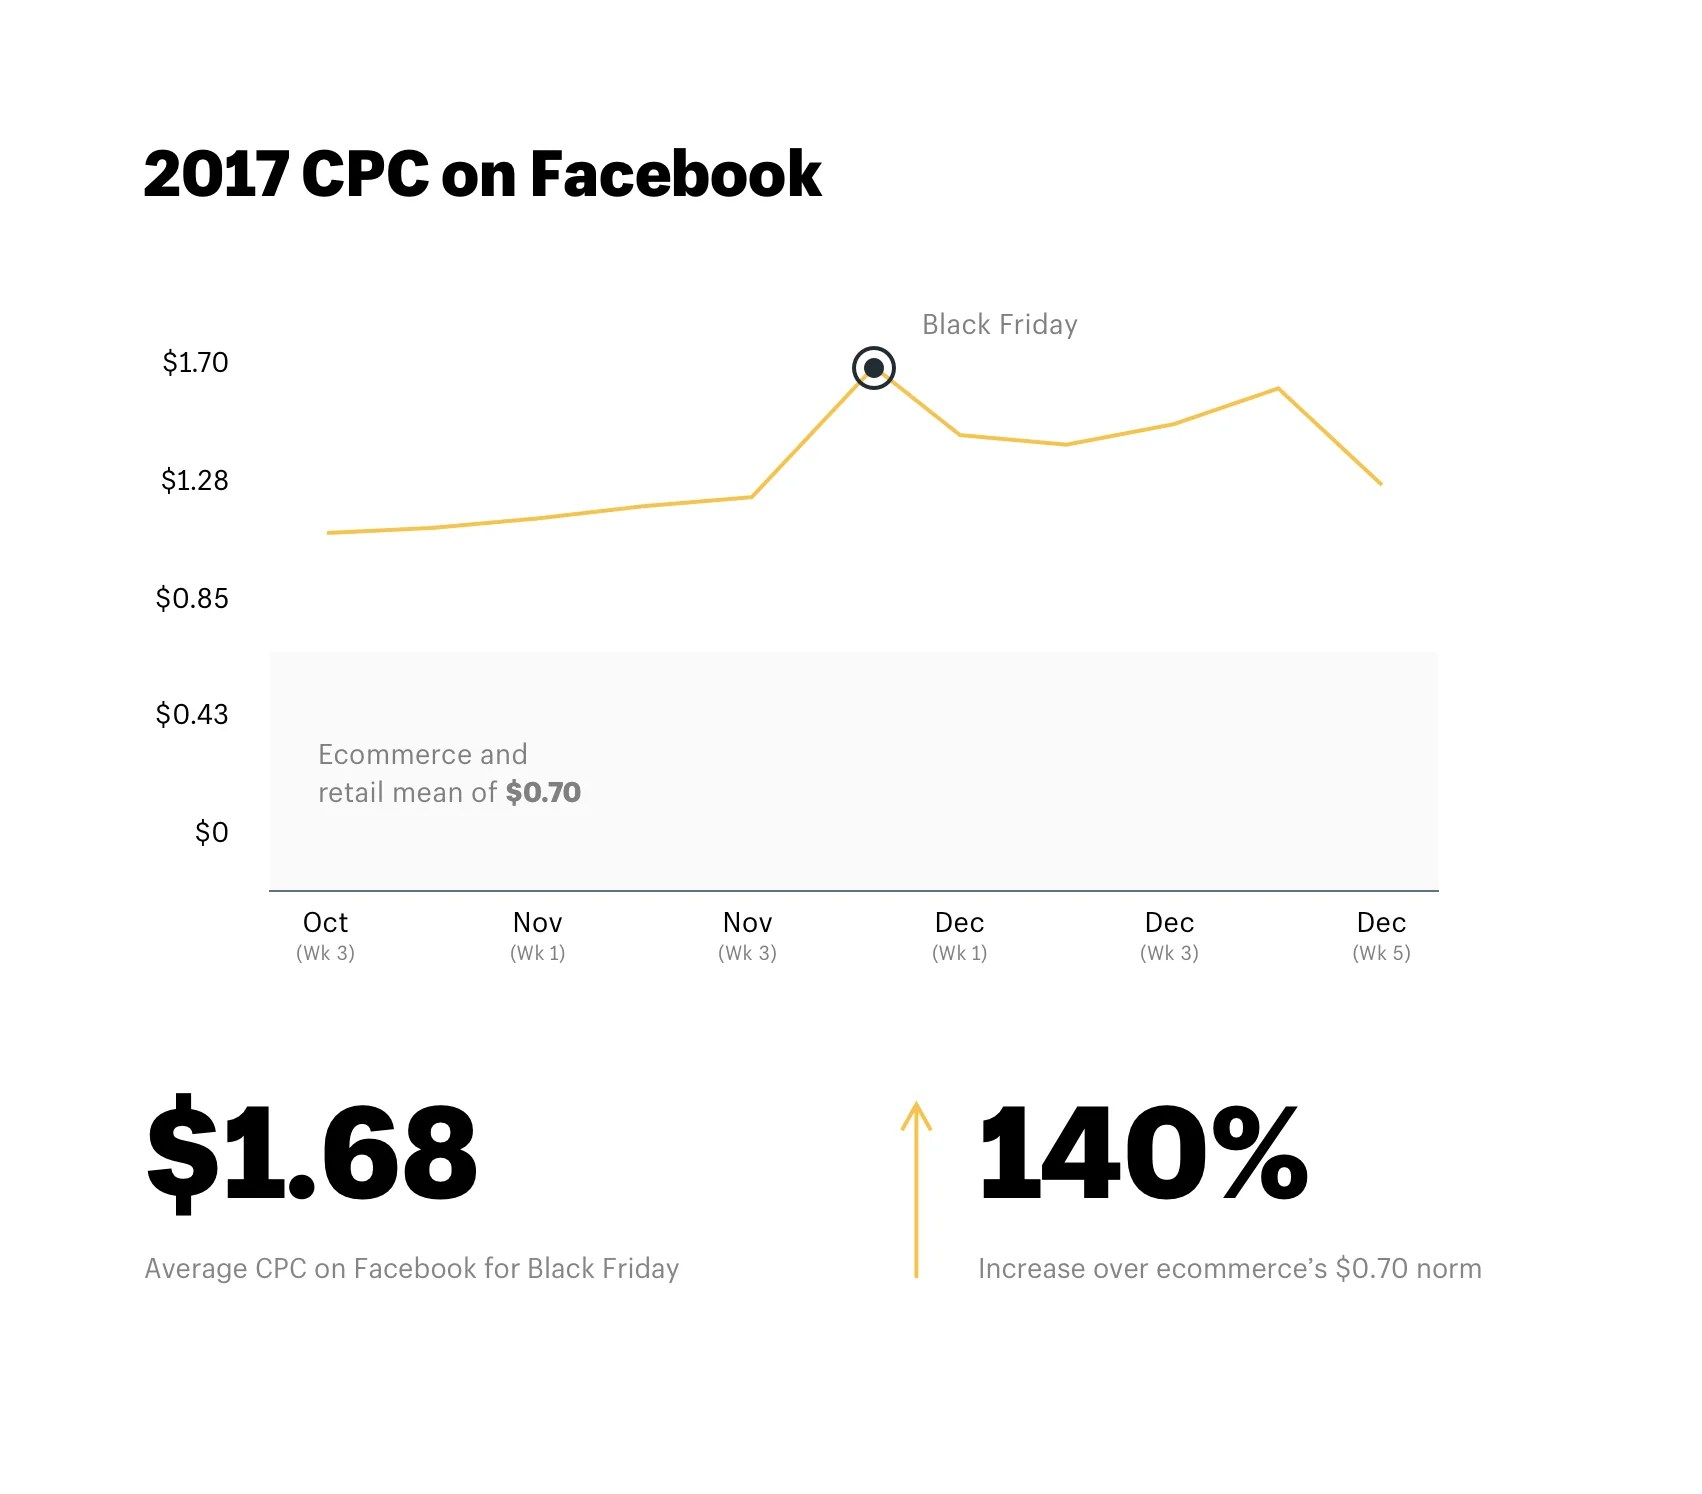 medium resolution of 2017 cpc on facebook during black friday and q4